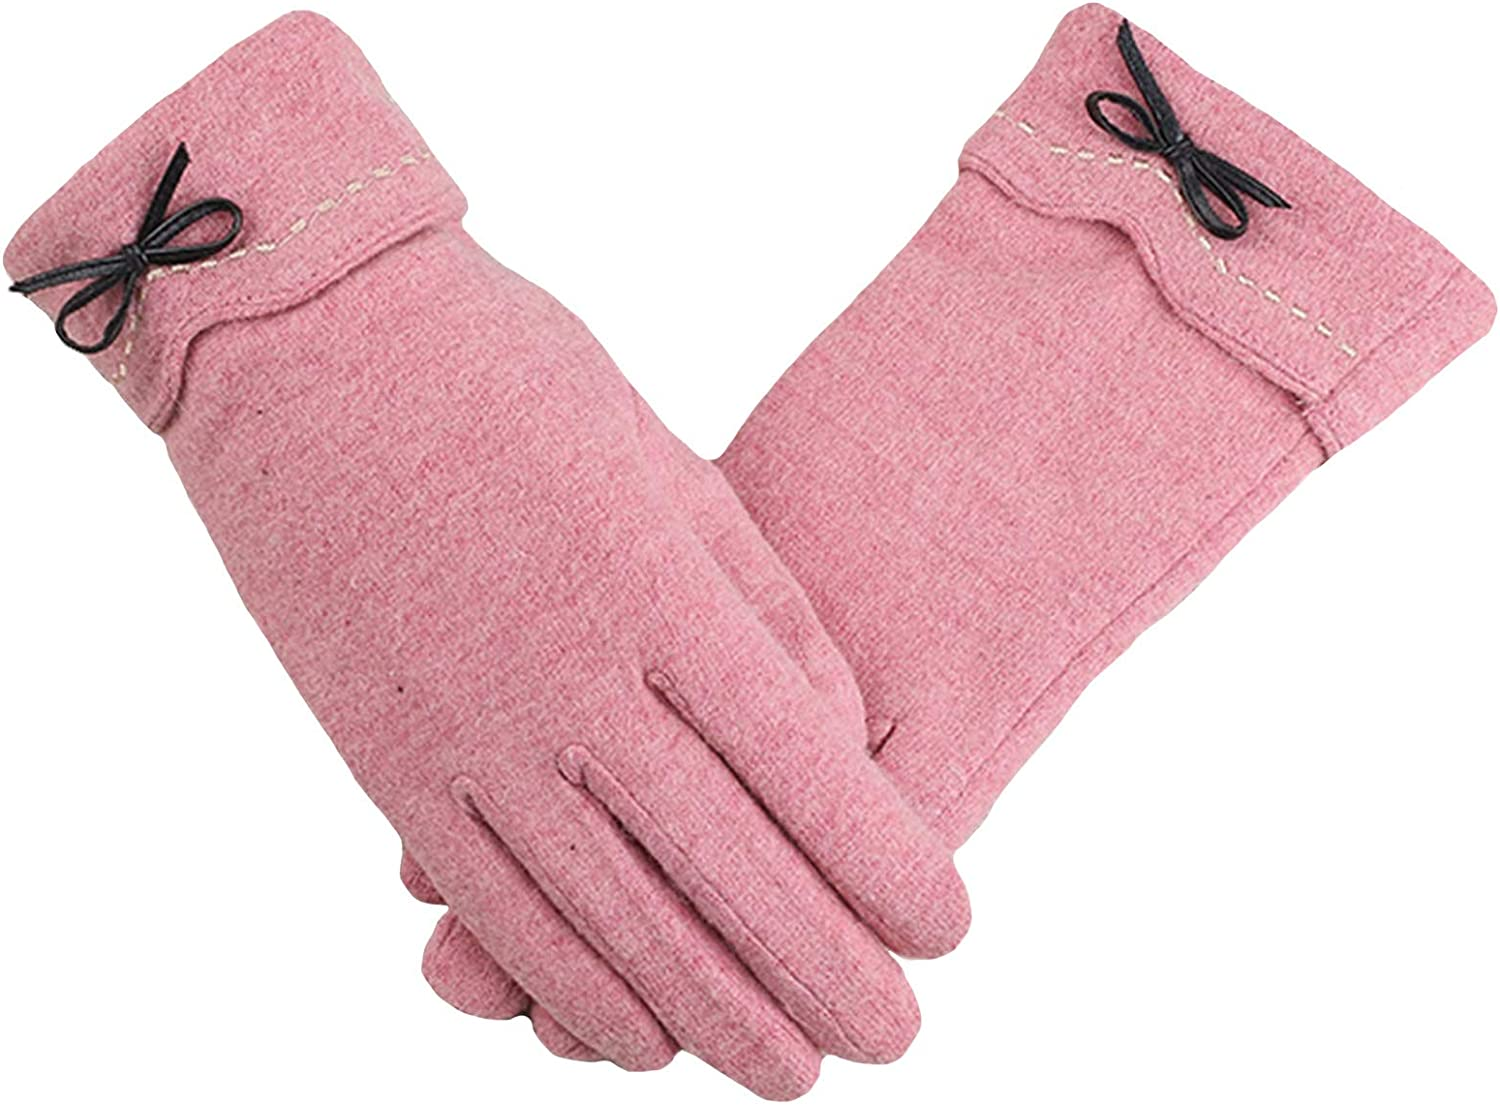 ZHANGYAN Gloves Winter Ladies Fashion Gloves Student Cute Plus Velvet Thick Warm Gloves Driving Touch Screen Gloves (Color : Pink)